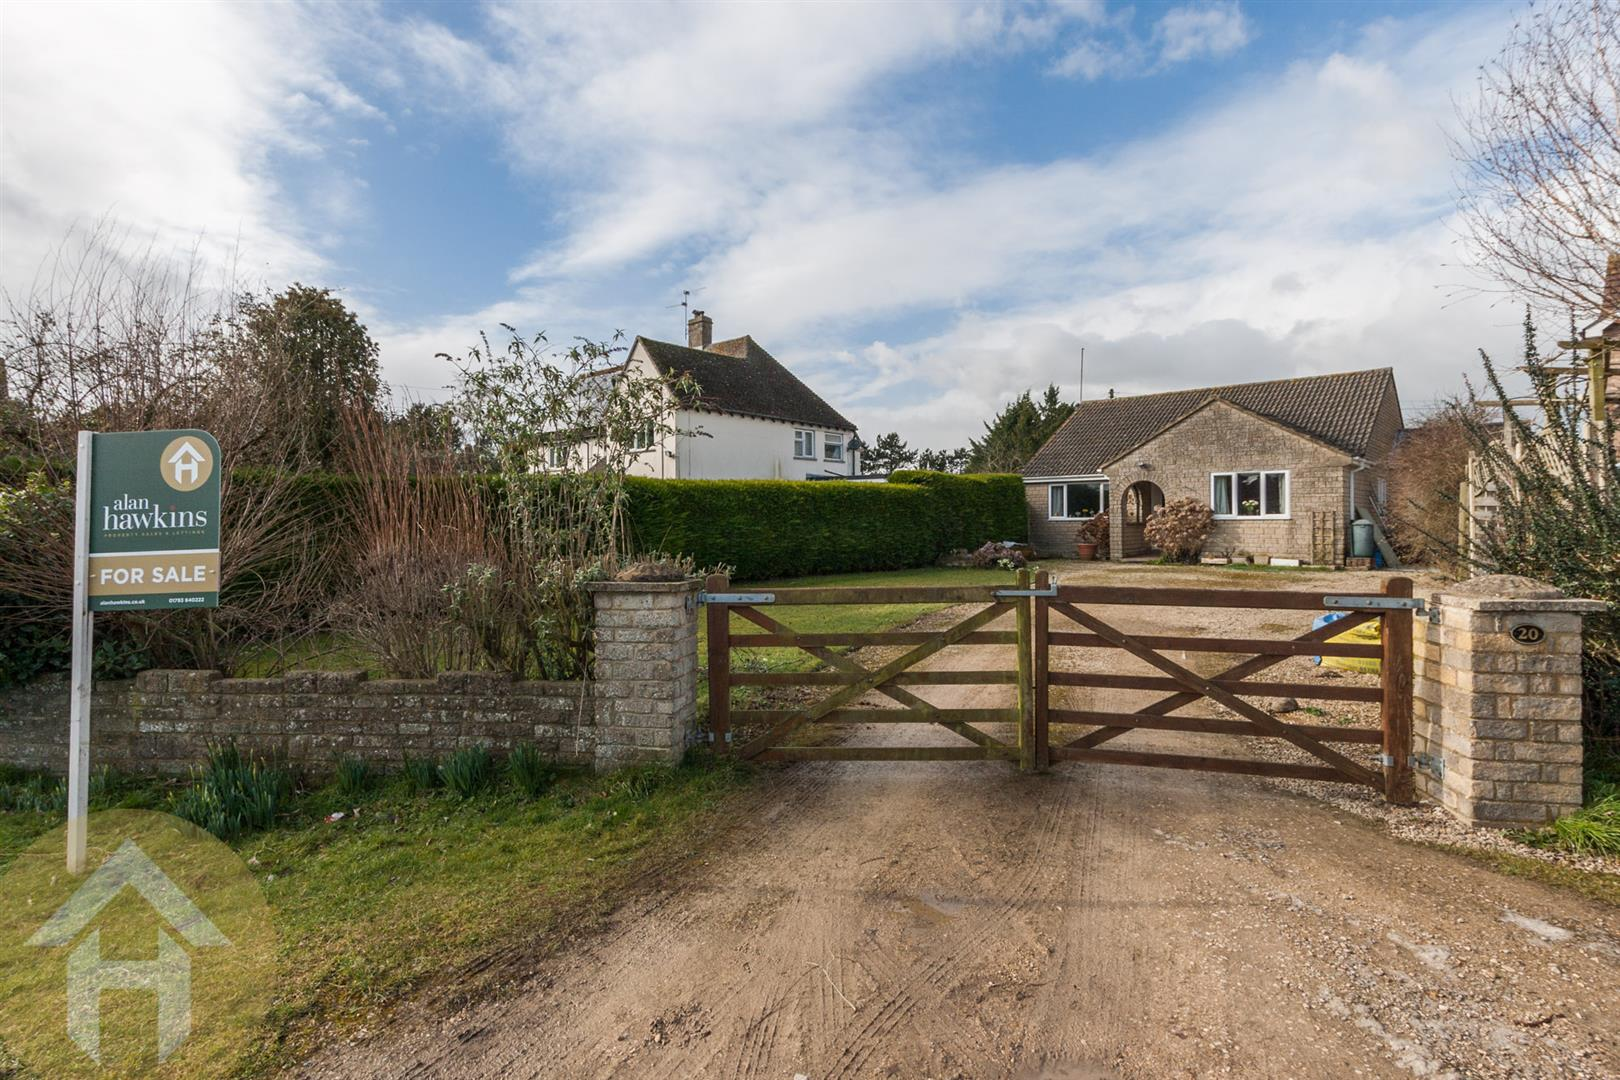 2 Bedrooms Detached Bungalow for sale in Dianmer Close, Hook, Nr Royal Wootton Bassett